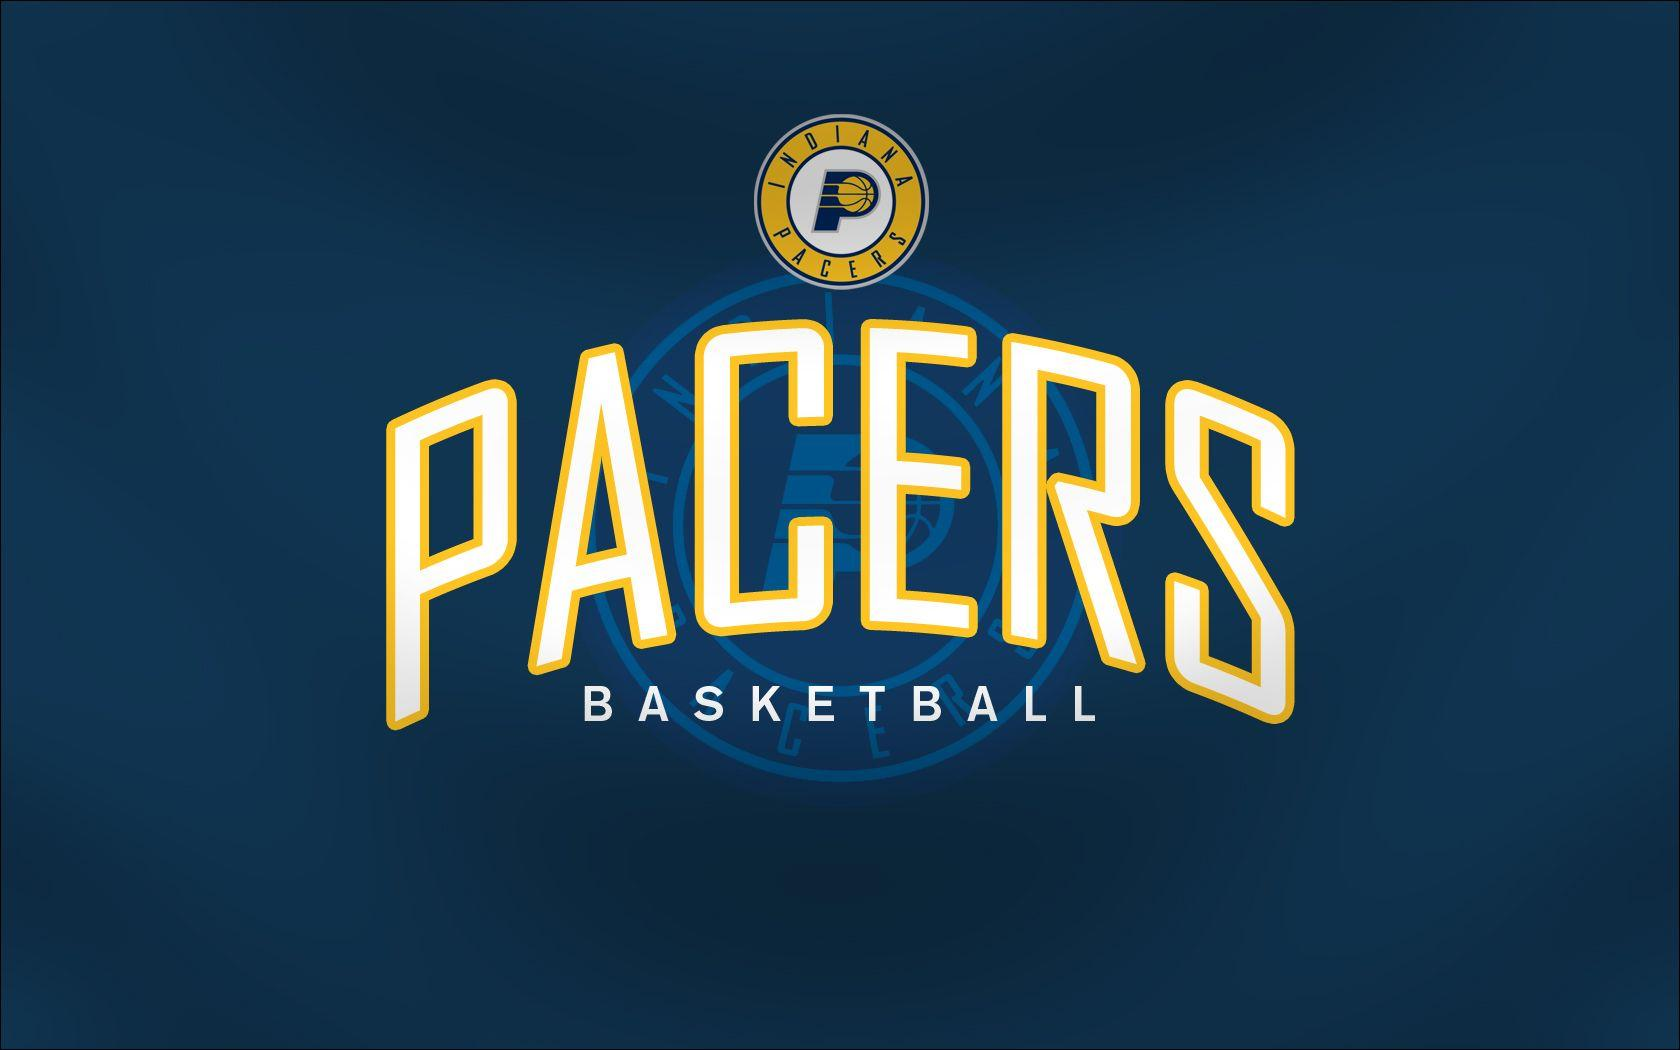 Indiana Pacers Wallpaper - WallpaperSafari